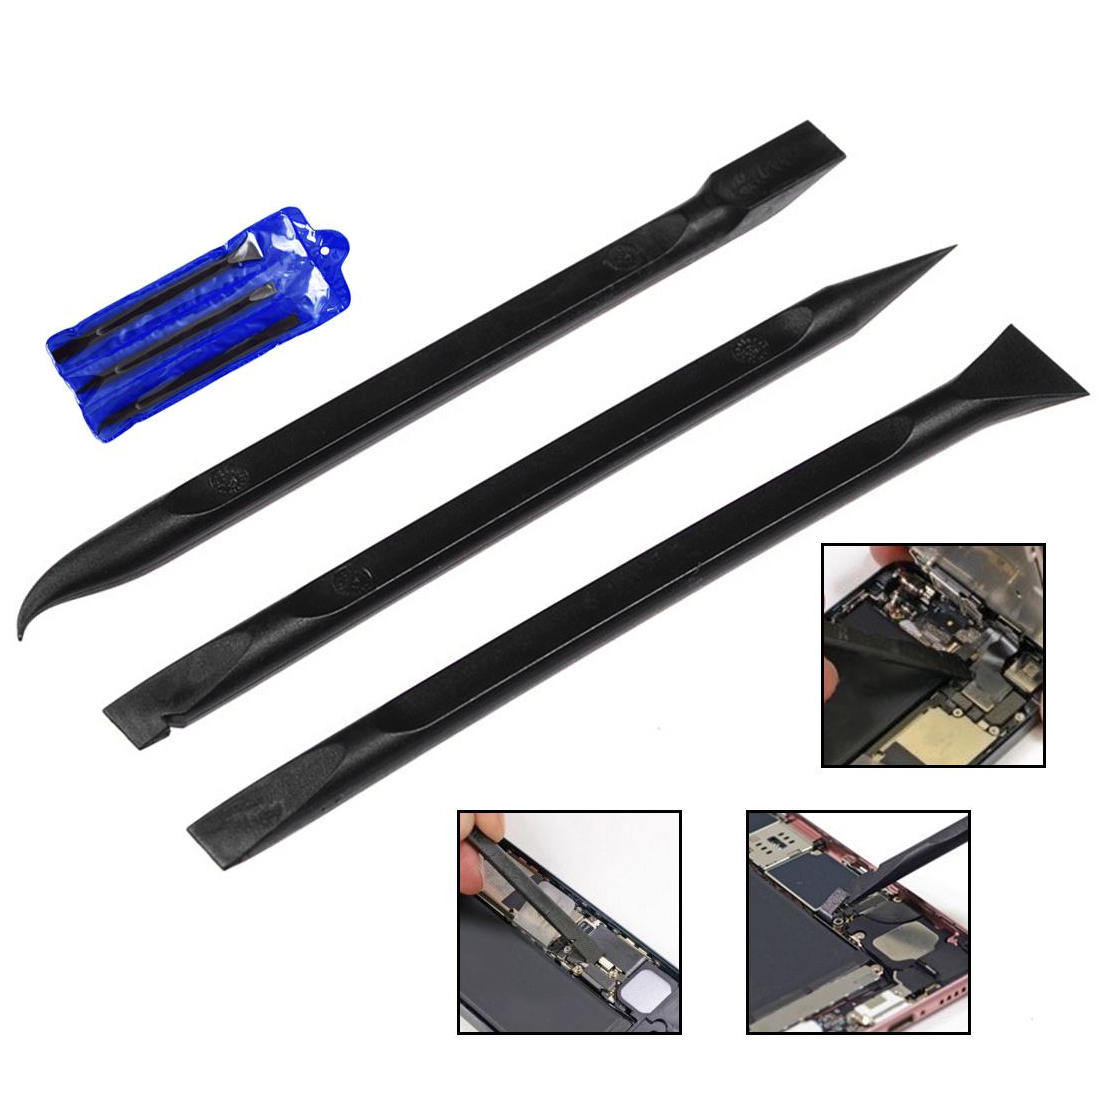 Black 6 In 1Durable Anti-static Spudger ESD Safe Heavy Duty Plastic Spudger Mobile Phone Opening Repair Tool